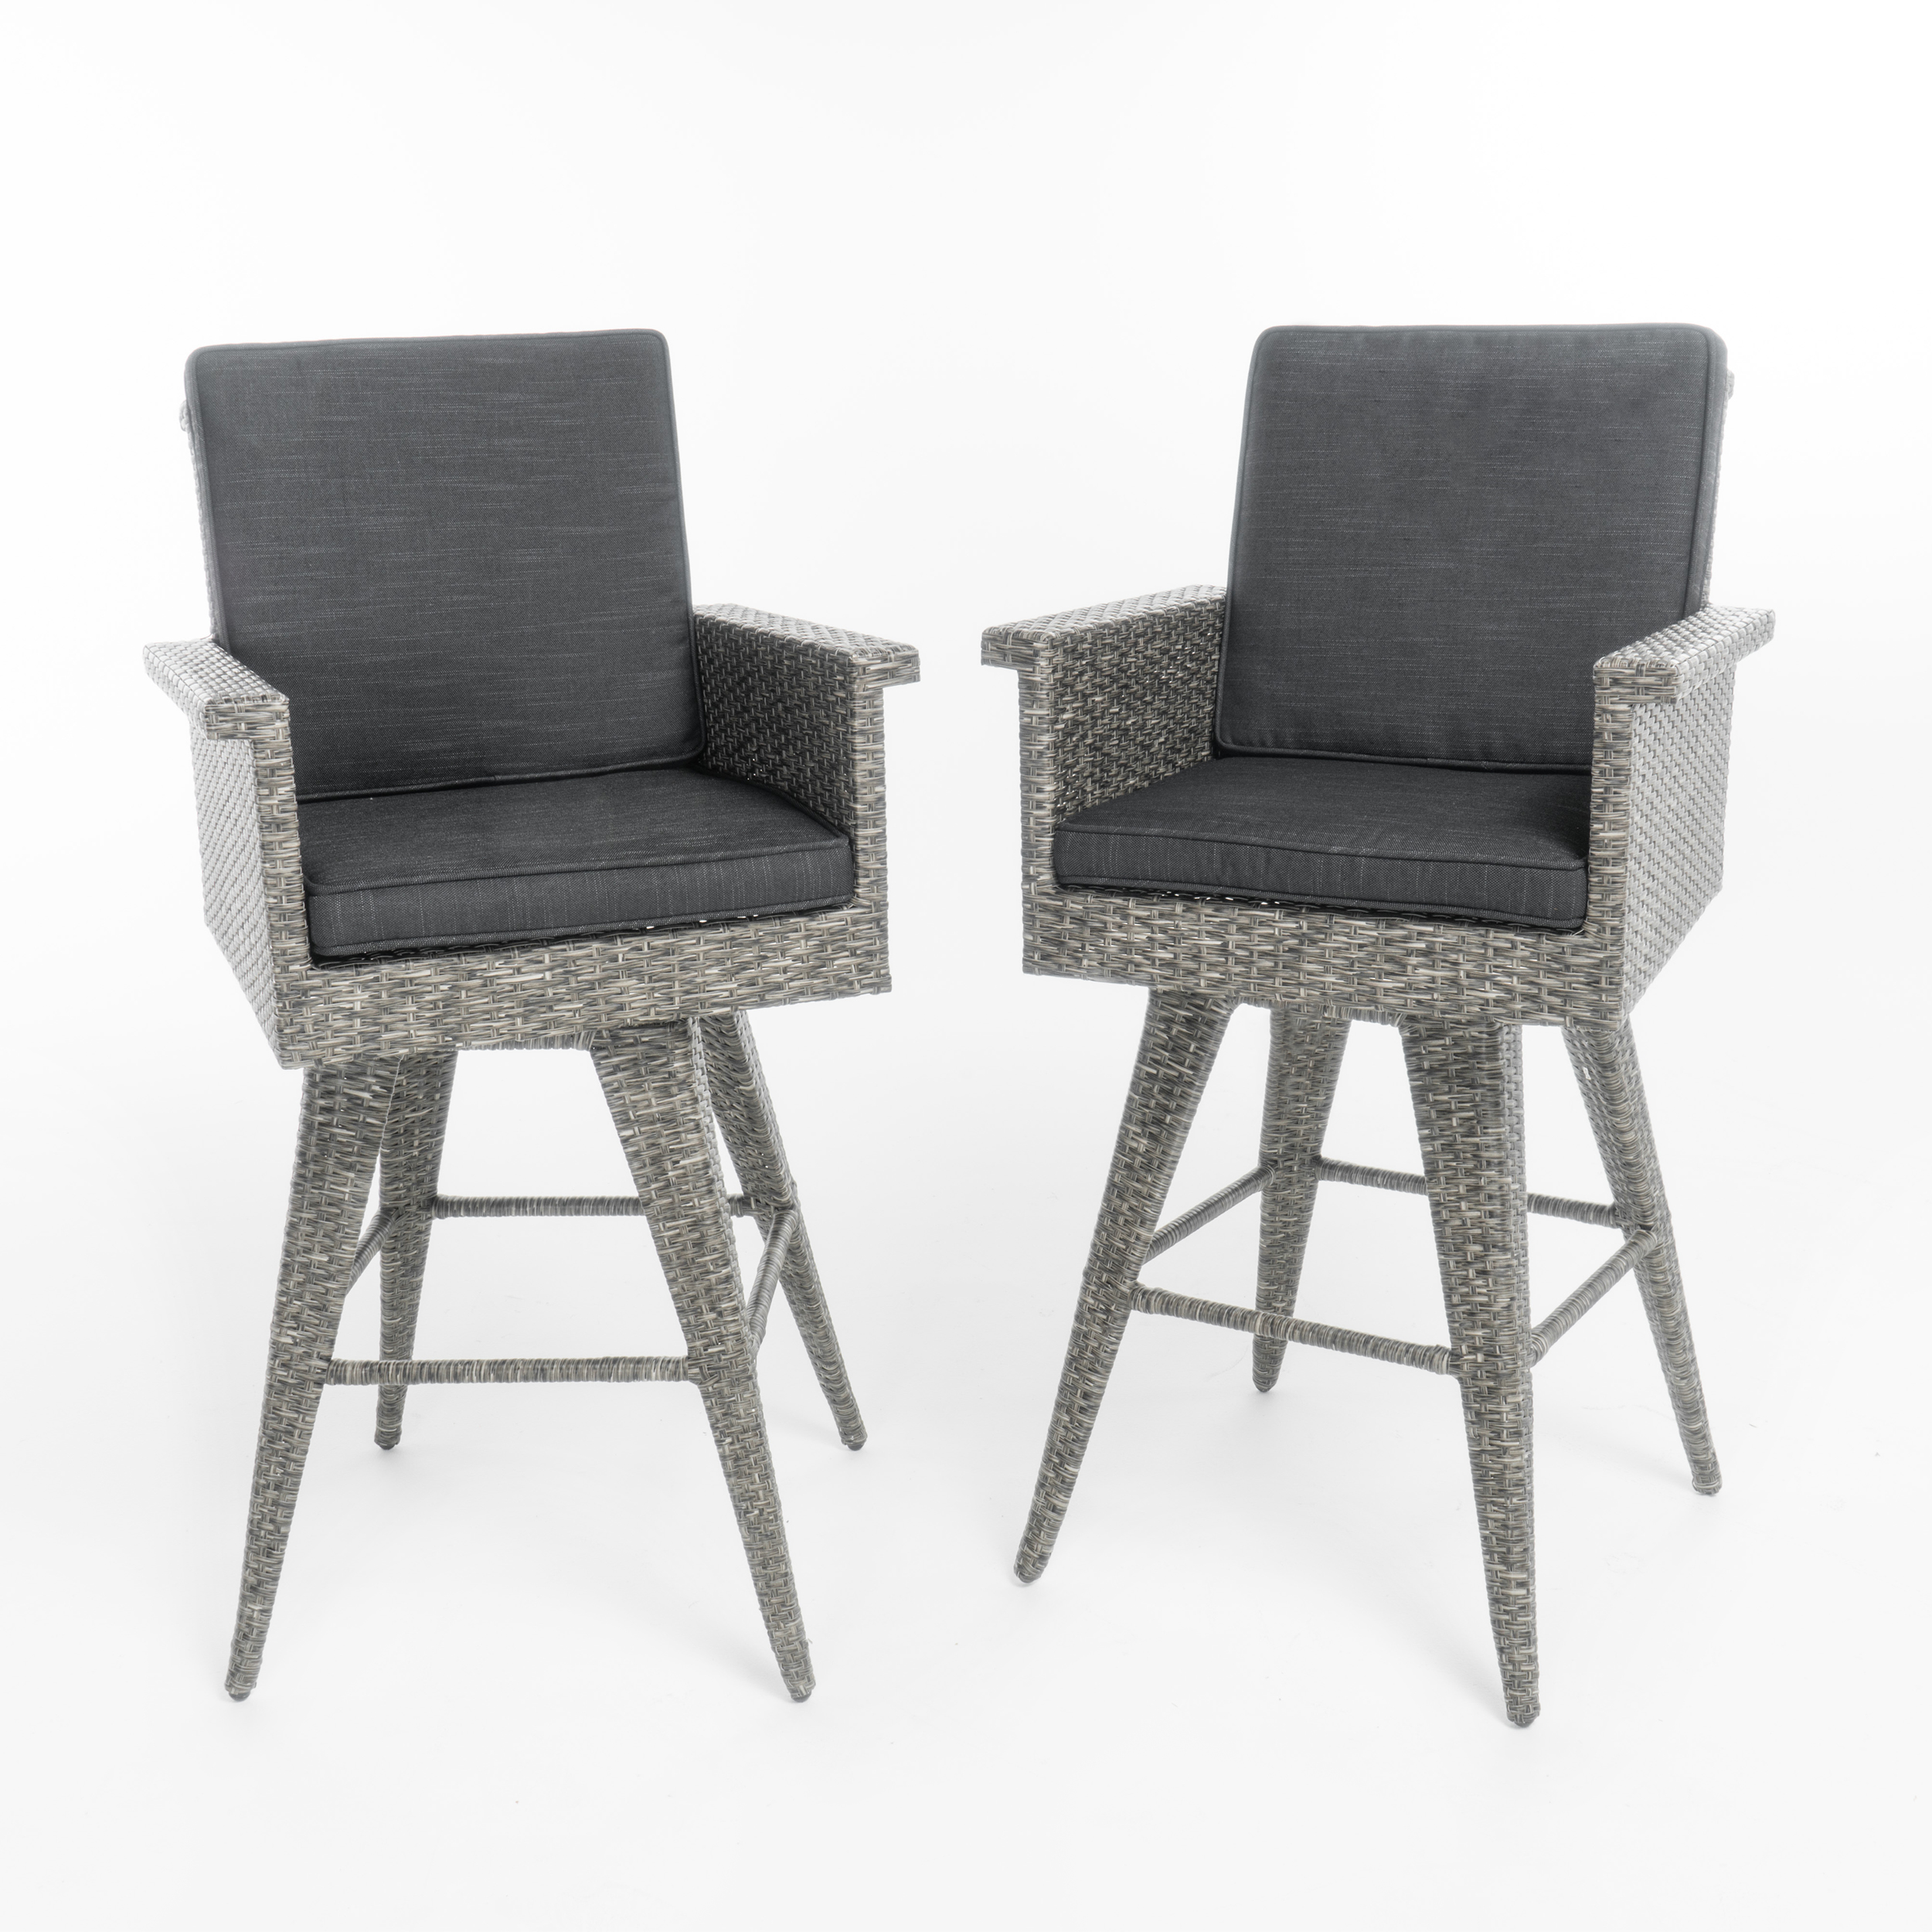 """Raleigh Outdoor Wicker 30"""" Bar Stools with Cushions, Set of 2 by GDF Studio"""